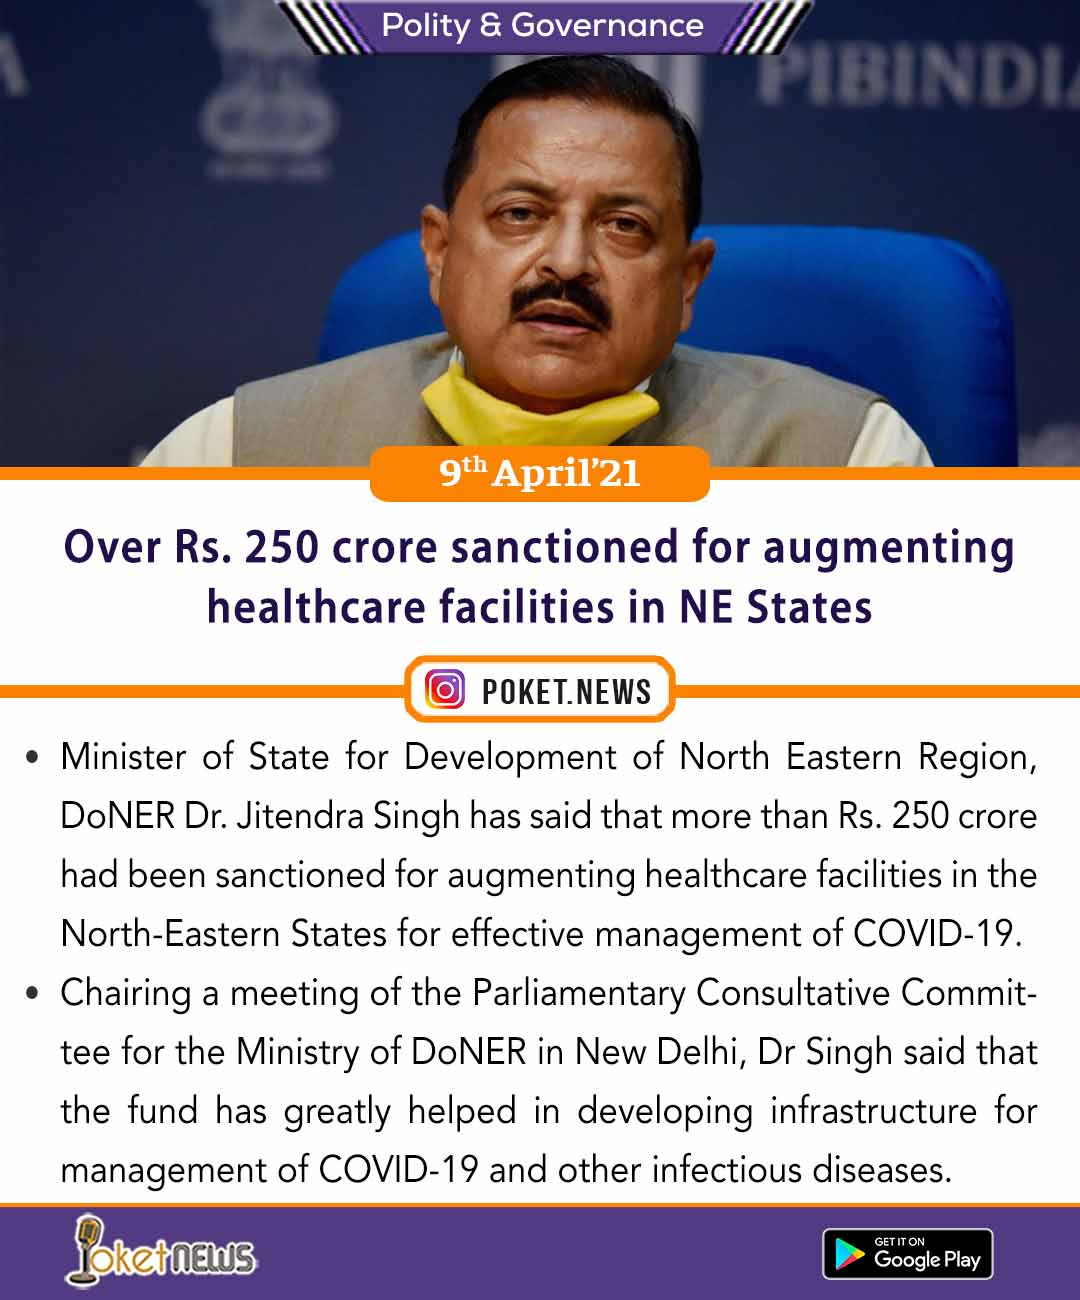 Over Rs. 250 crore sanctioned for augmenting healthcare facilities in NE States